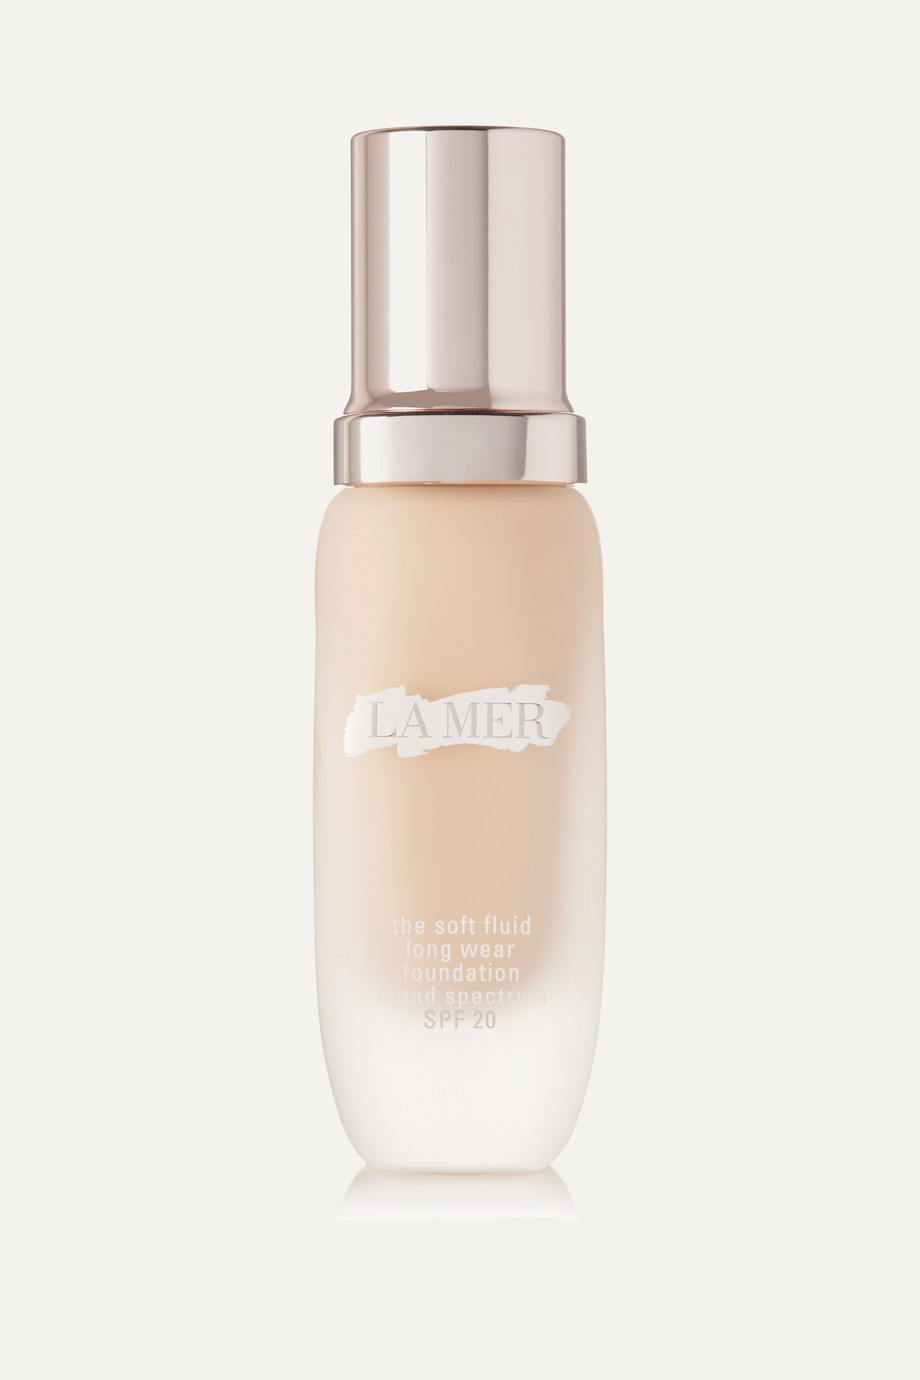 La Mer Soft Fluid Long Wear Foundation - Crème, 30ml